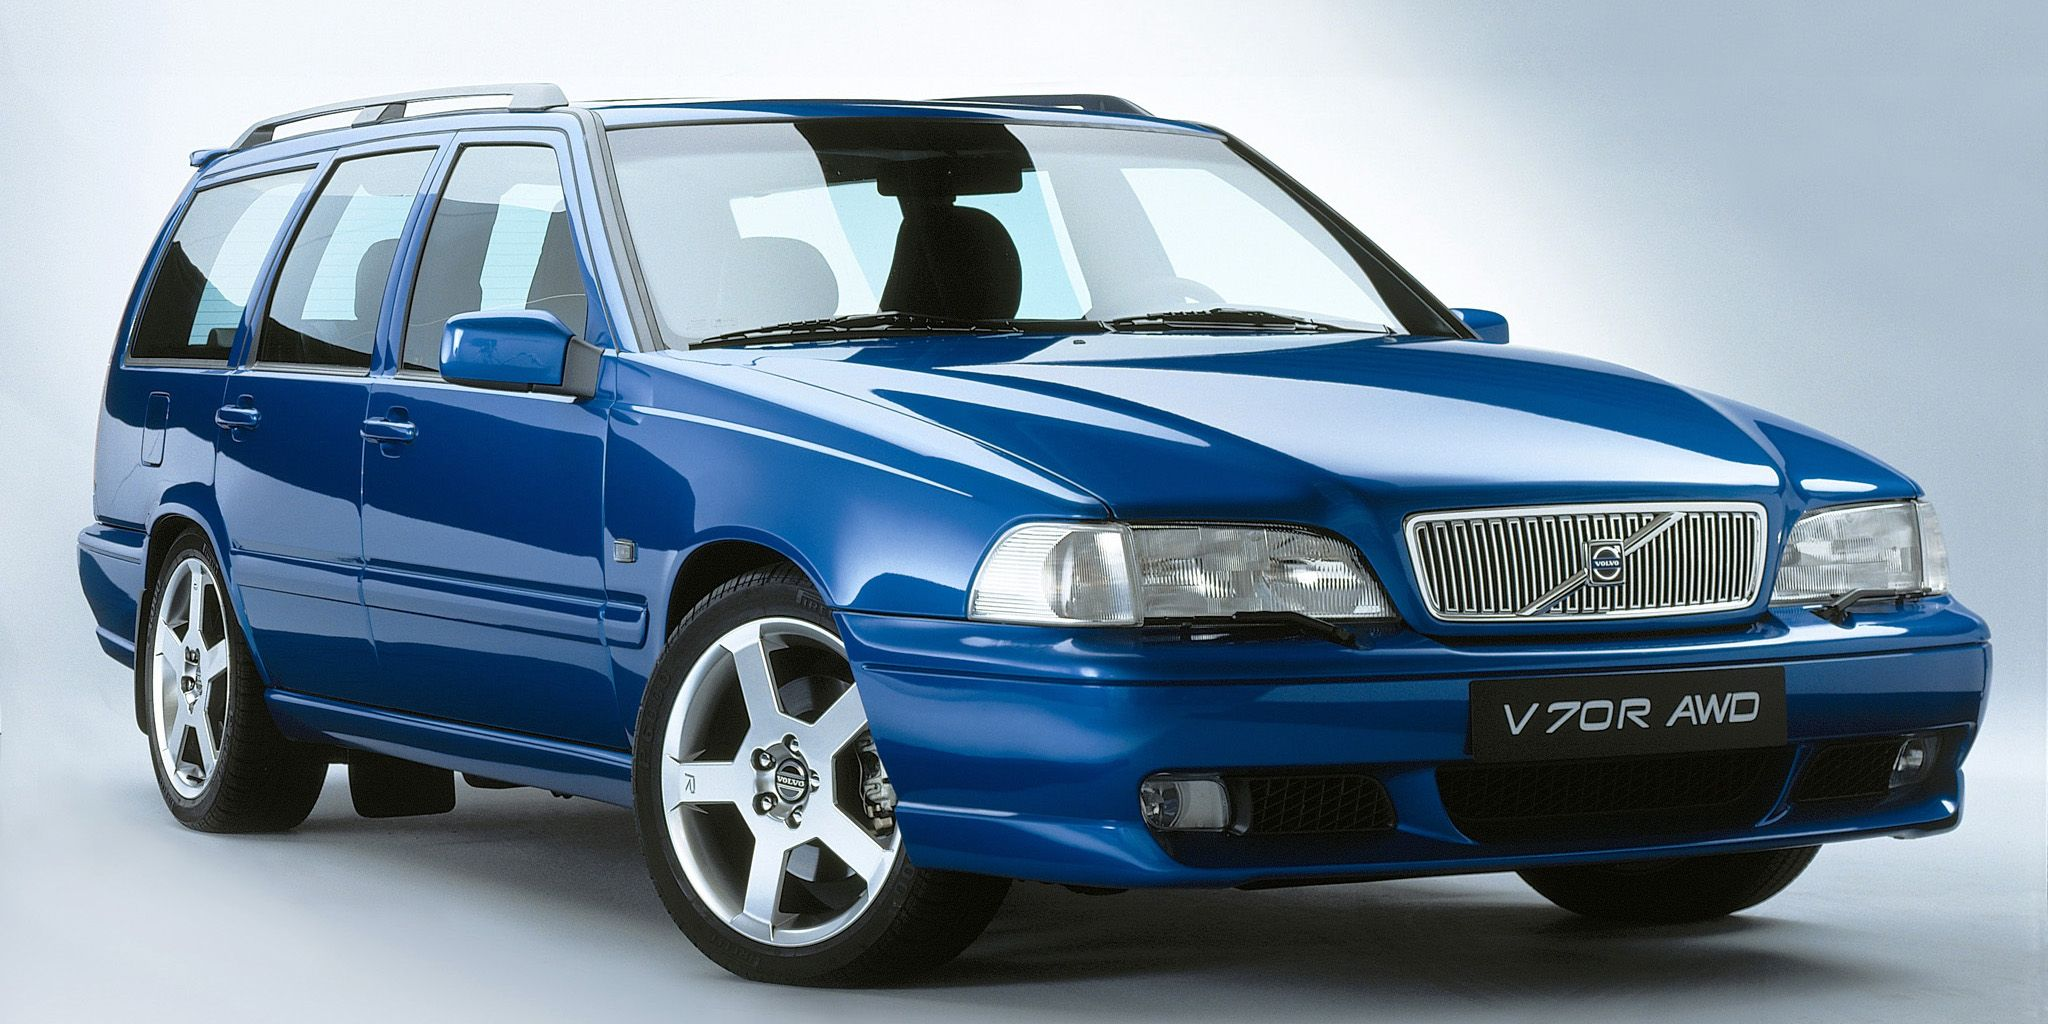 Best Used Cars Under 10 000 Top Rated Cars For Sale Under 10k